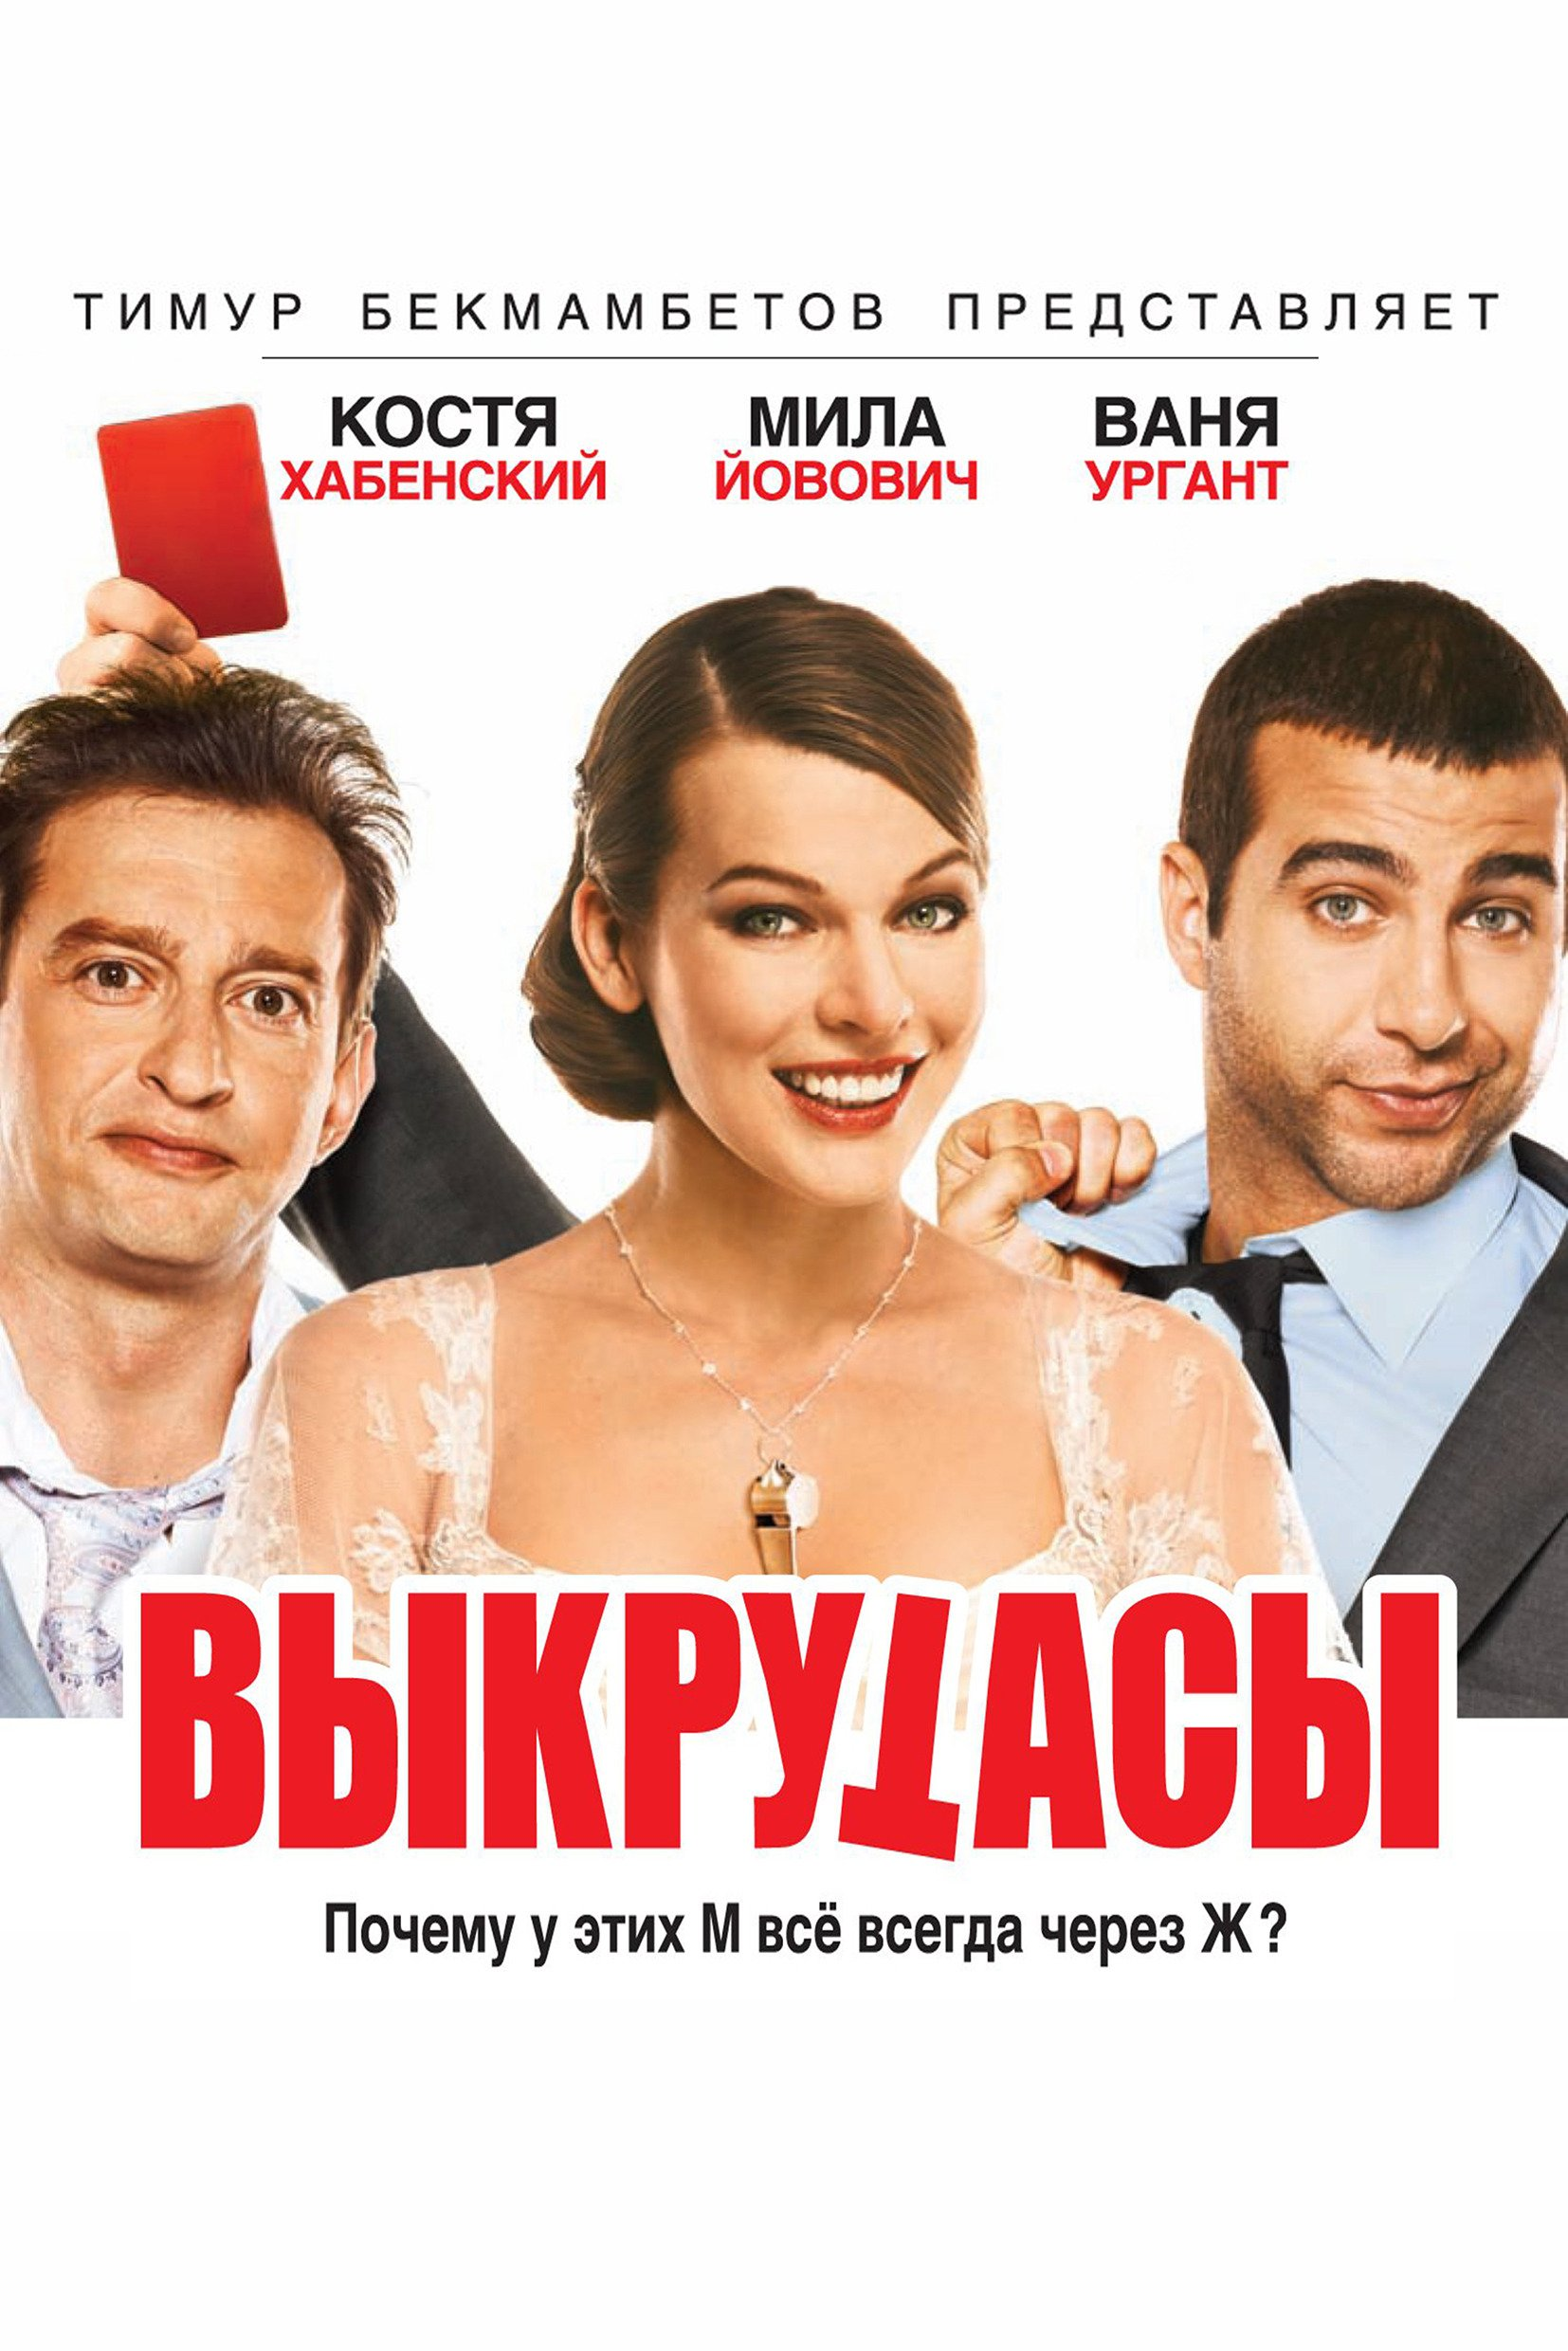 download luck by chance full movie 480p